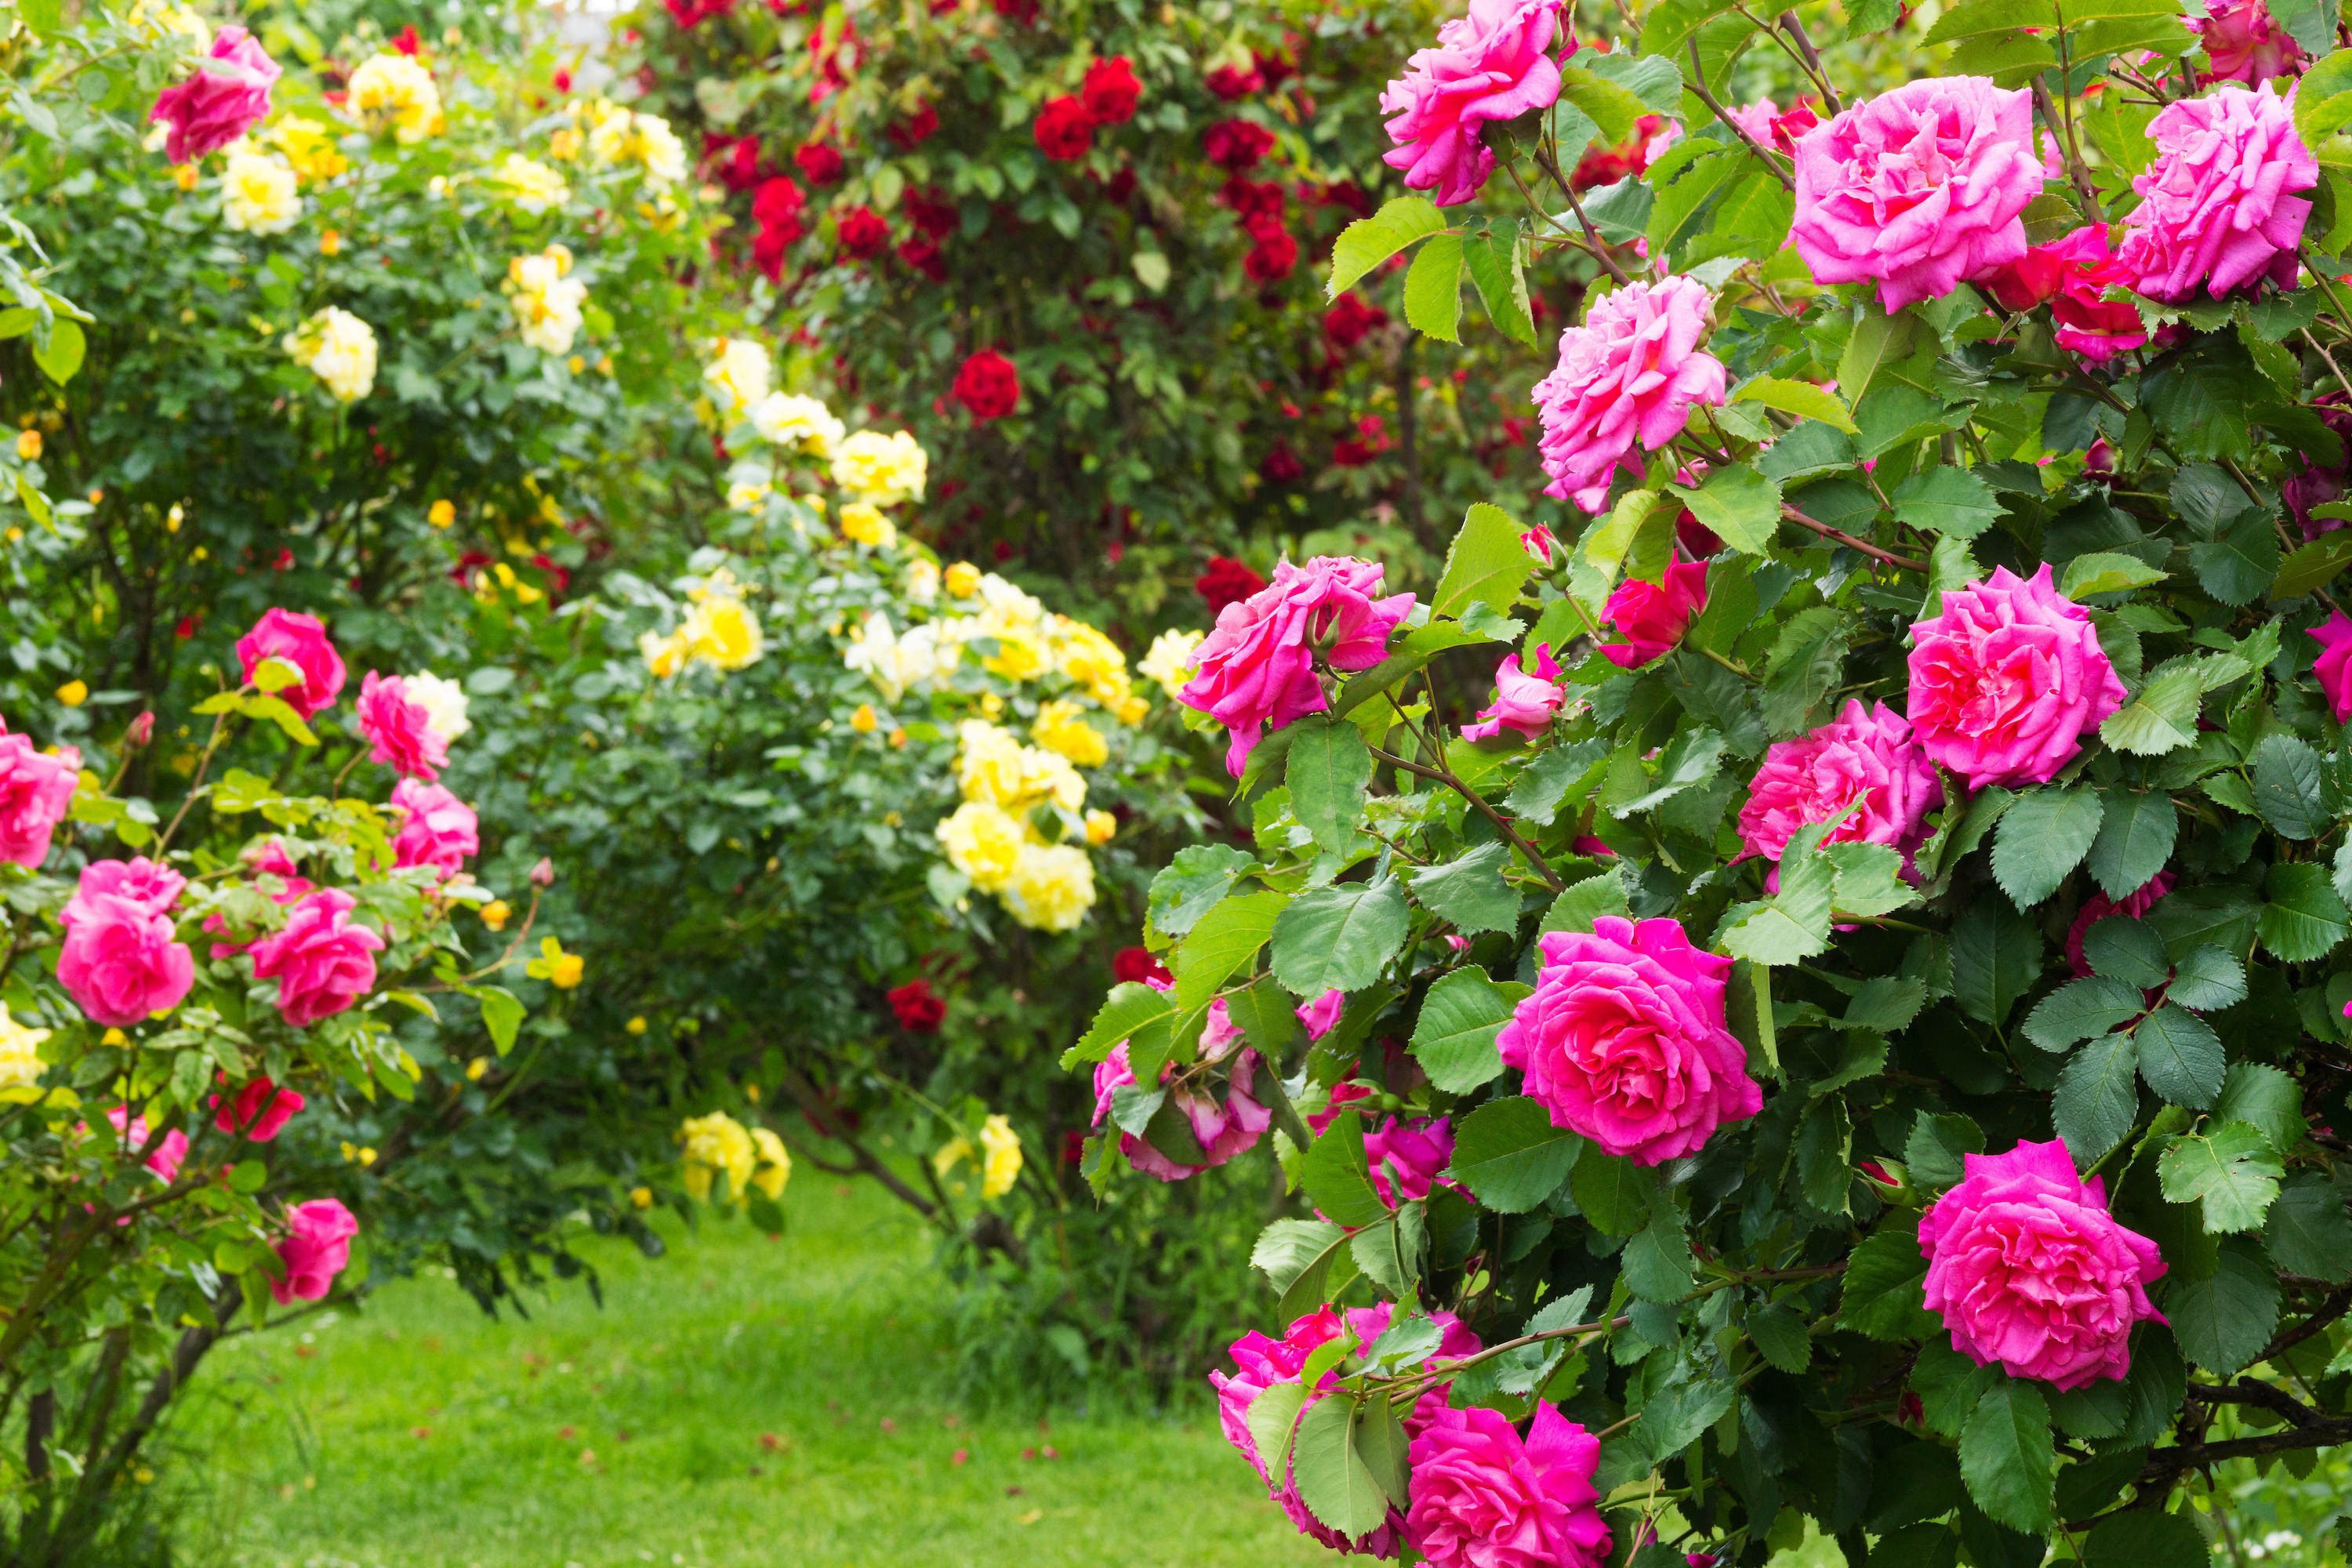 caring for rose bushes